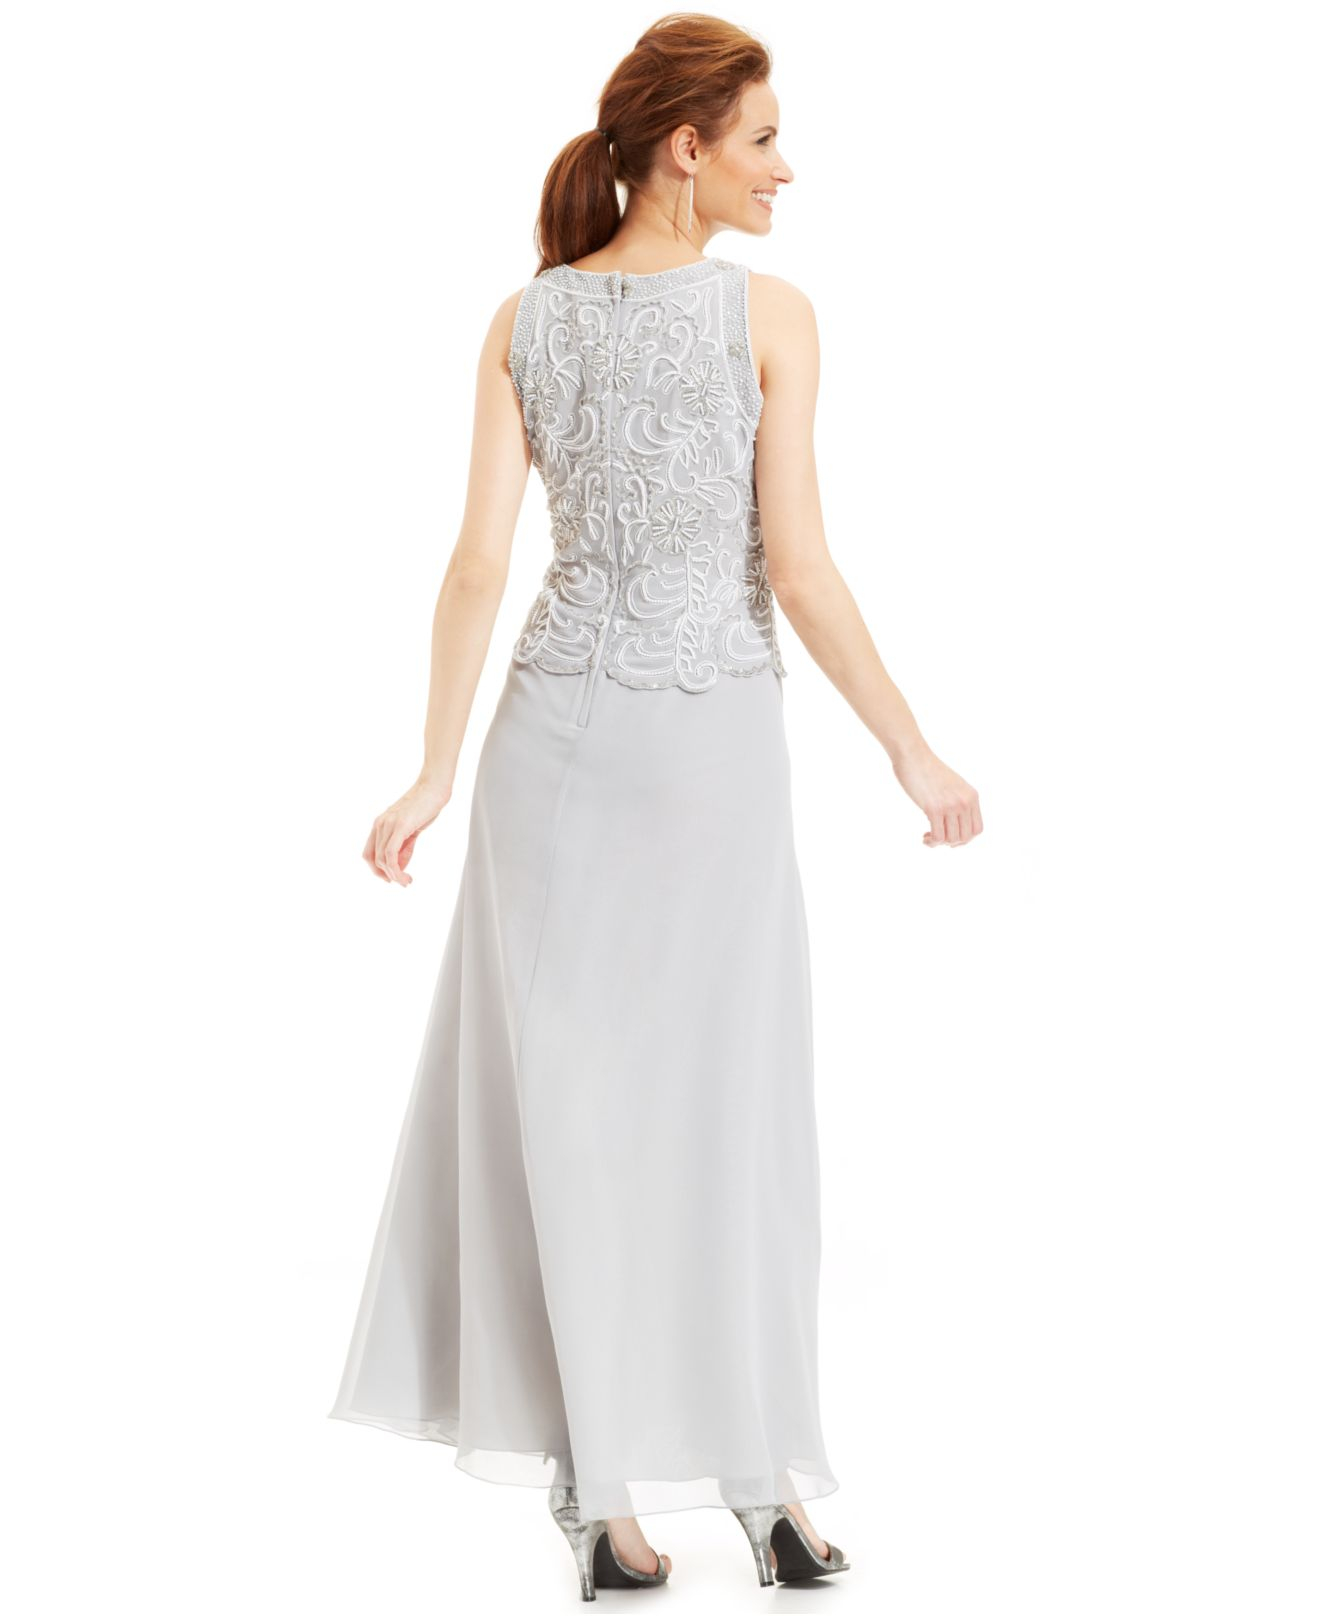 Lyst - J Kara Beaded Bodice Chiffon Gown And Shawl in Metallic